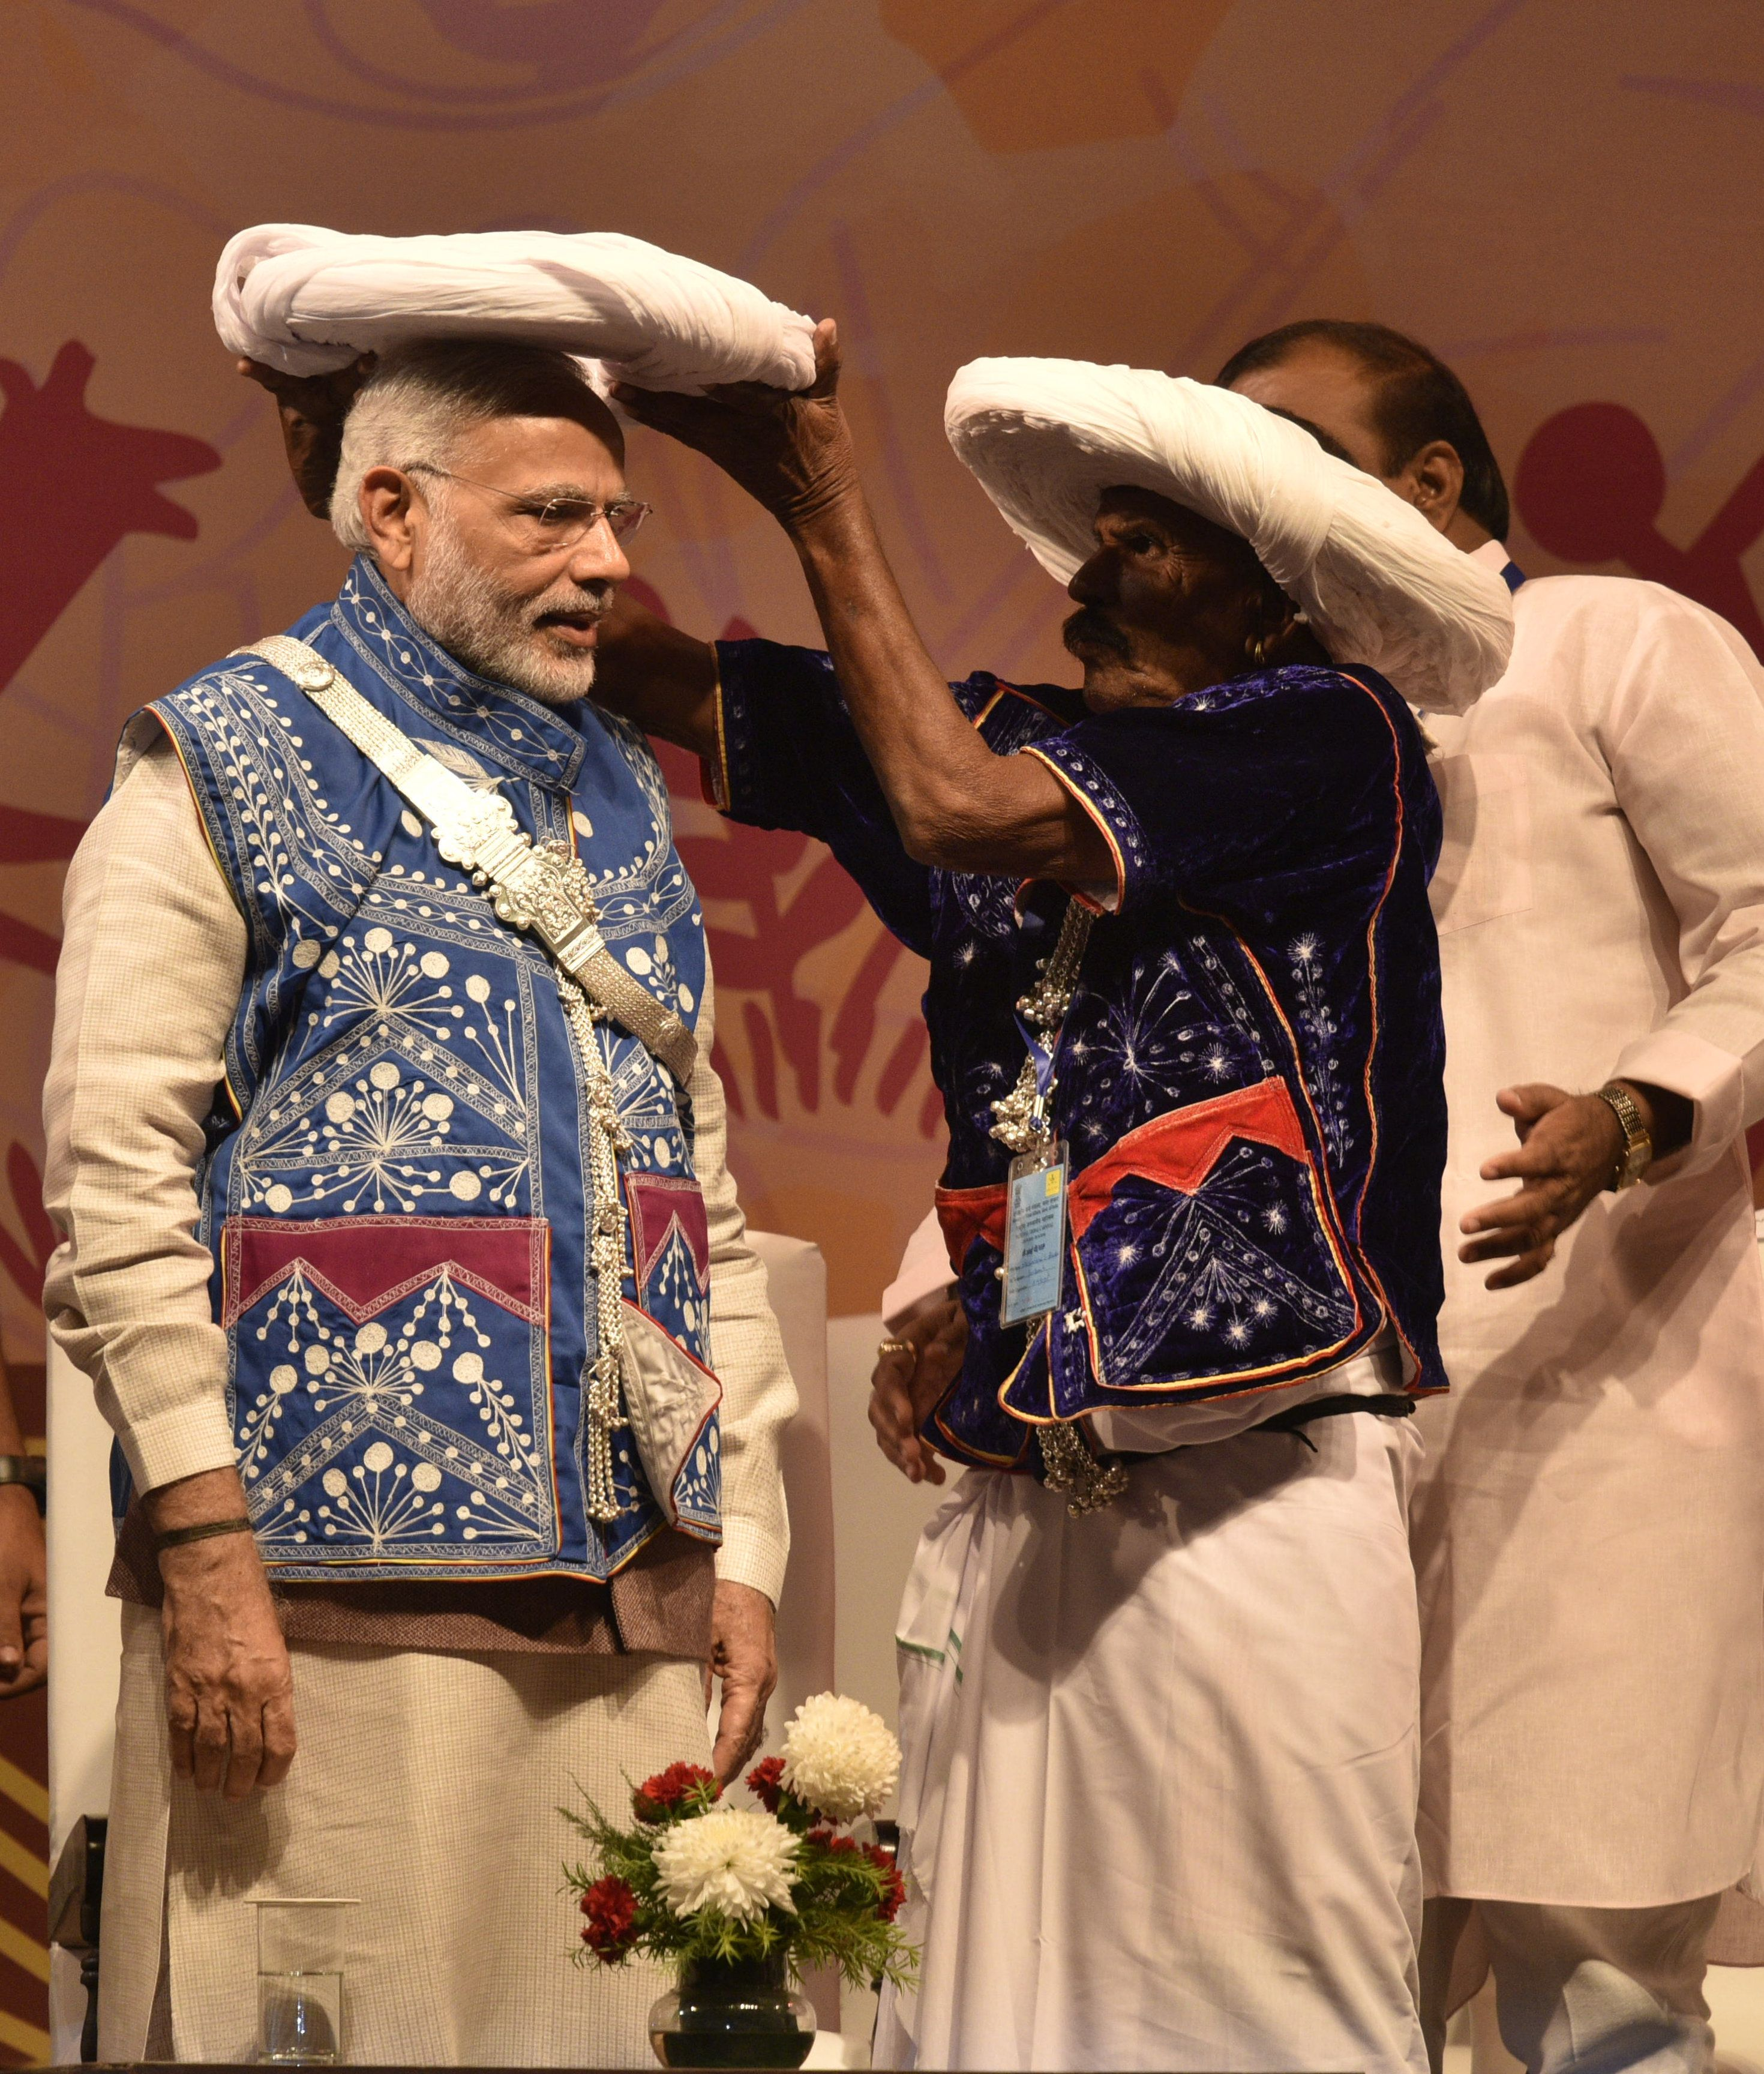 Prime Minister Narendra Modi, in tribal attire, being offered a traditional turban at the inauguration...